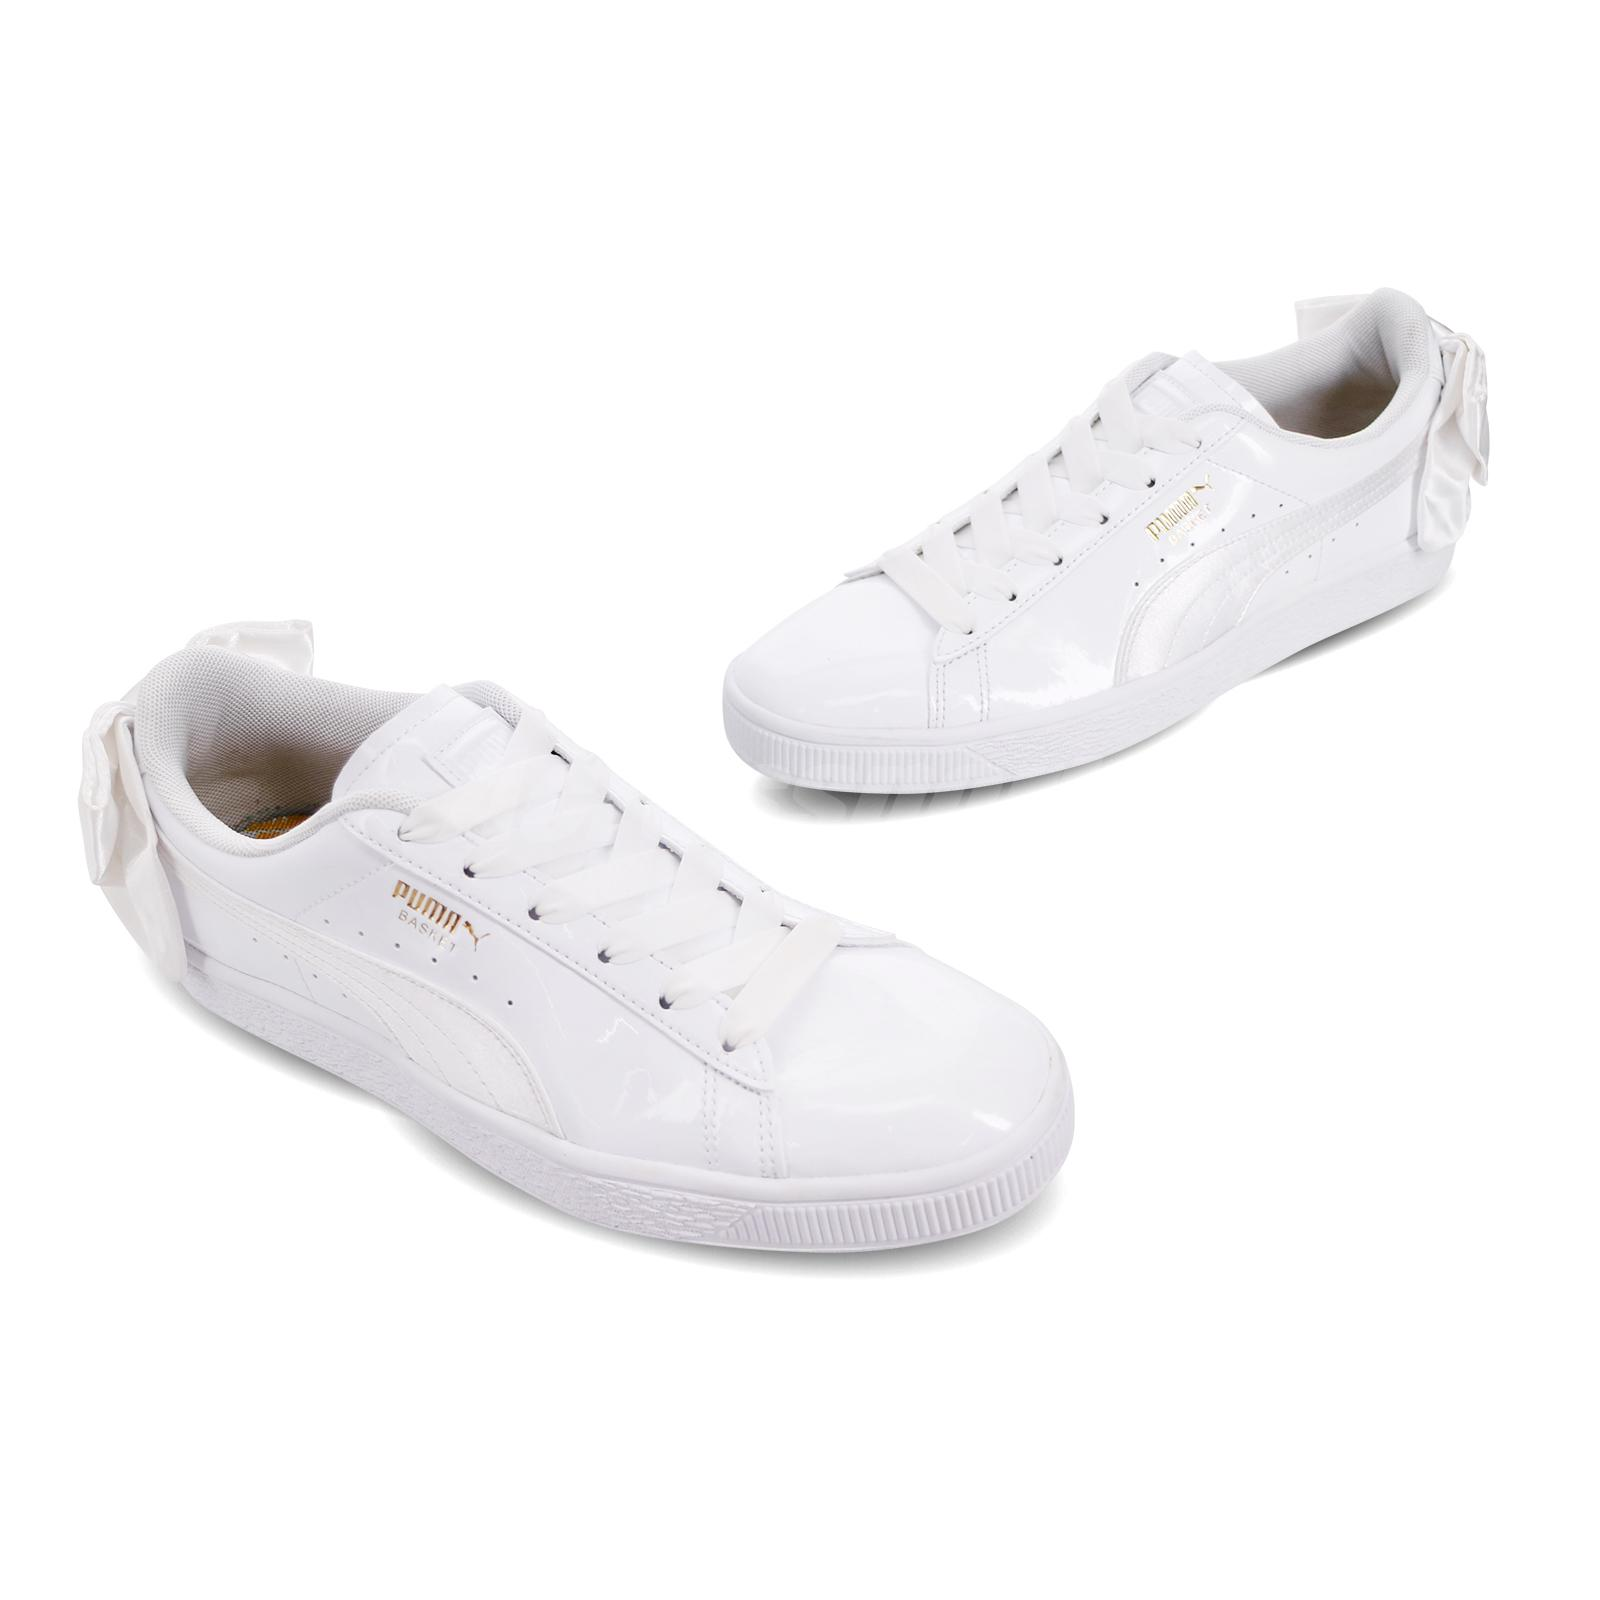 Details about Puma Basket Bow SB Wns KR White Gold Women Casual Shoes Sneakers 368130 02